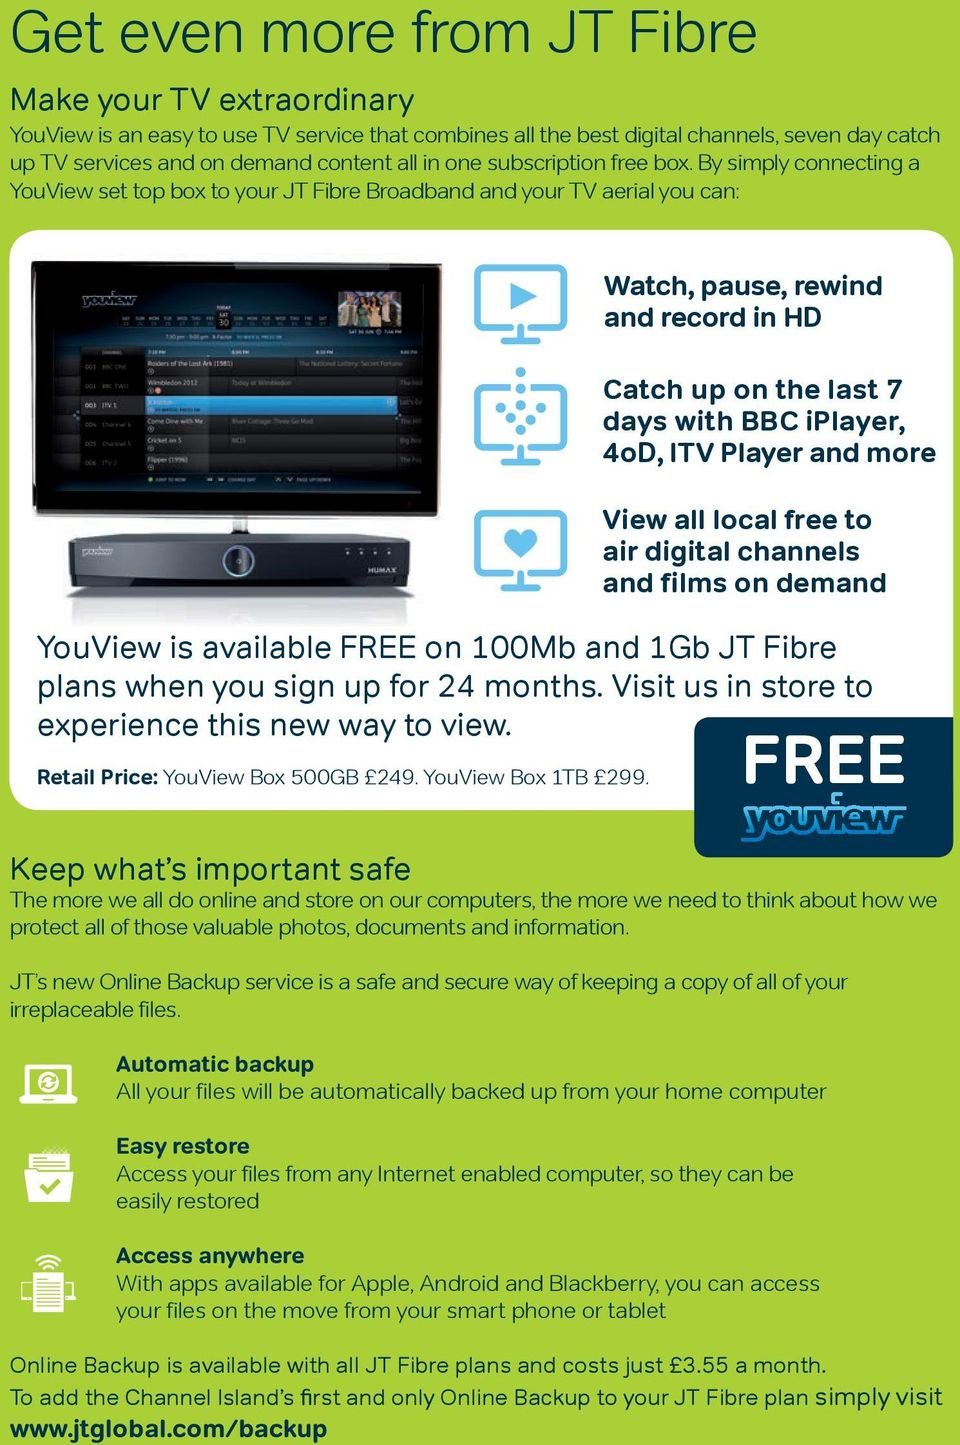 By simply connecting a YouView set top box to your JT Fibre Broadband and your TV aerial you can: Watch, pause, rewind and record in HD Catch up on the last 7 days with BBC iplayer, 4oD, ITV Player